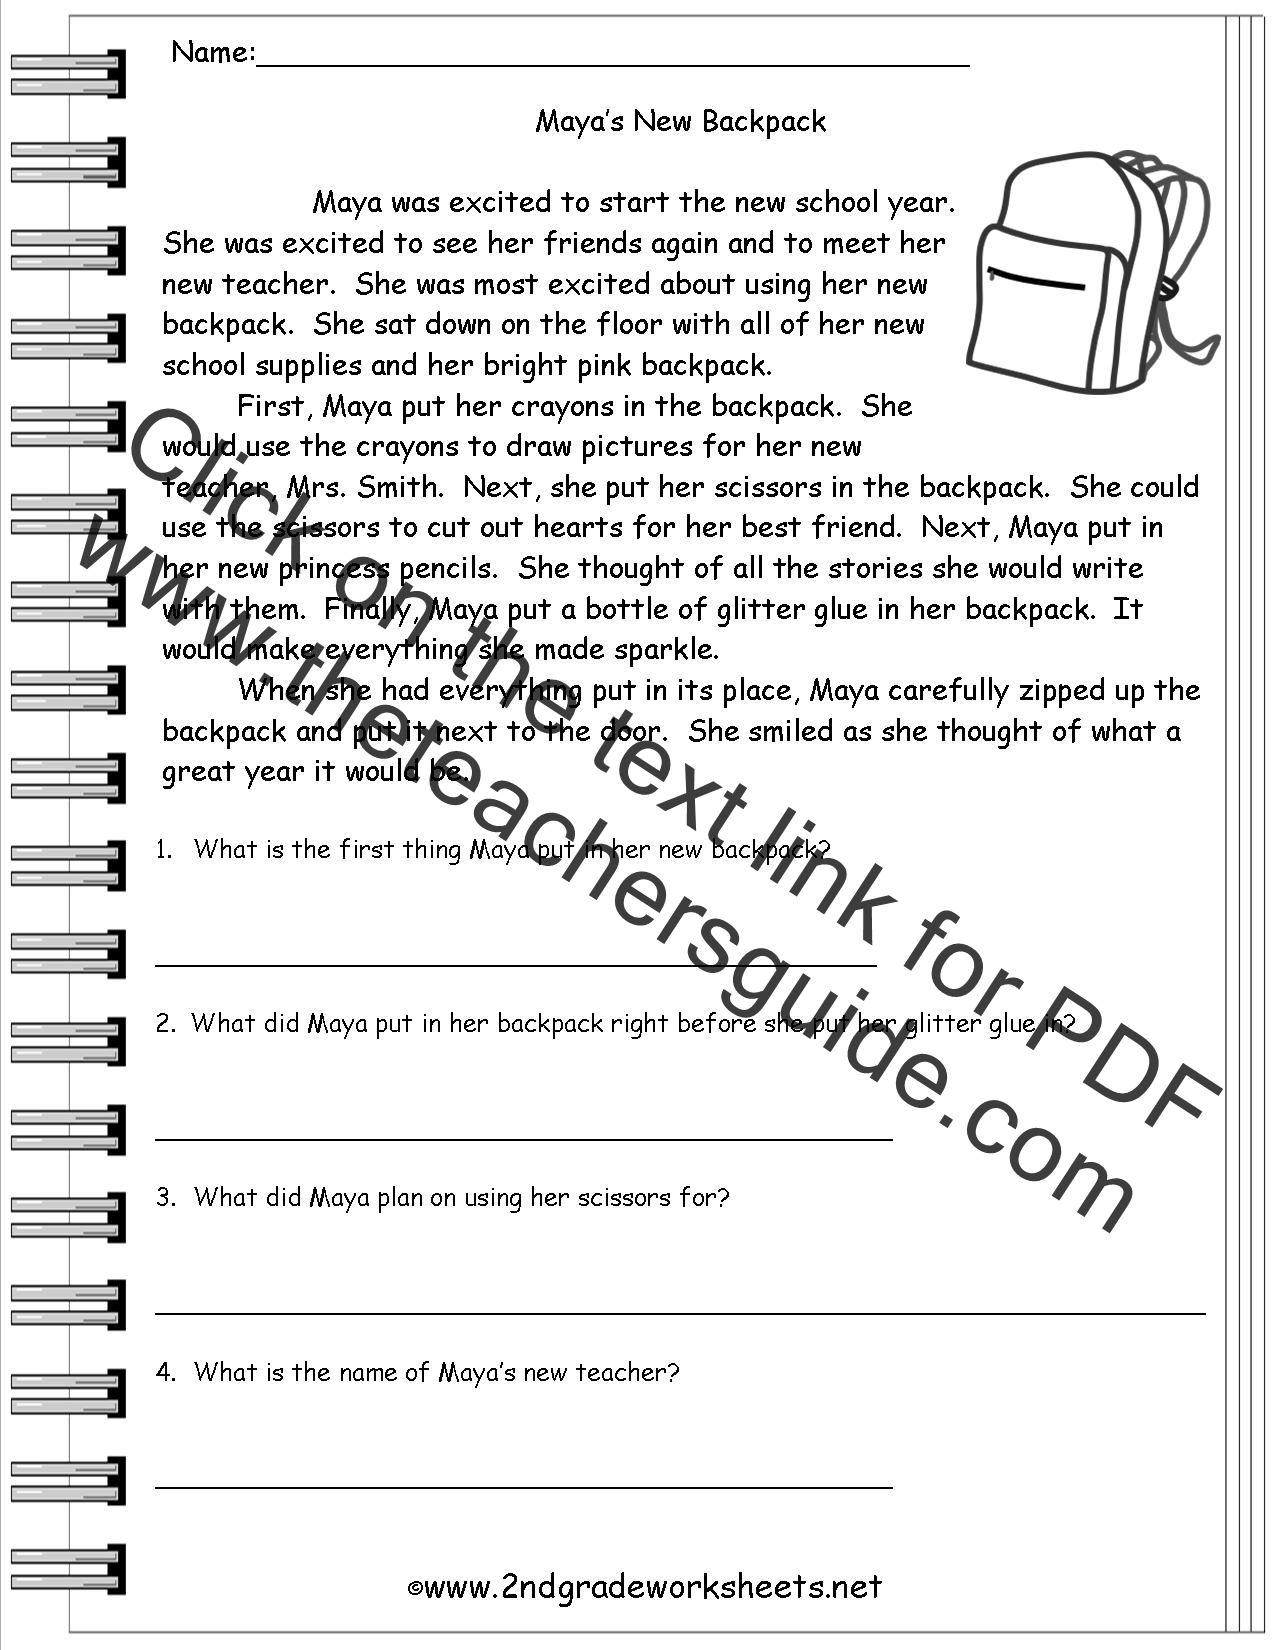 Free Worksheet Free Comprehension Worksheets For Grade 2 reading worksheeets literature worksheets